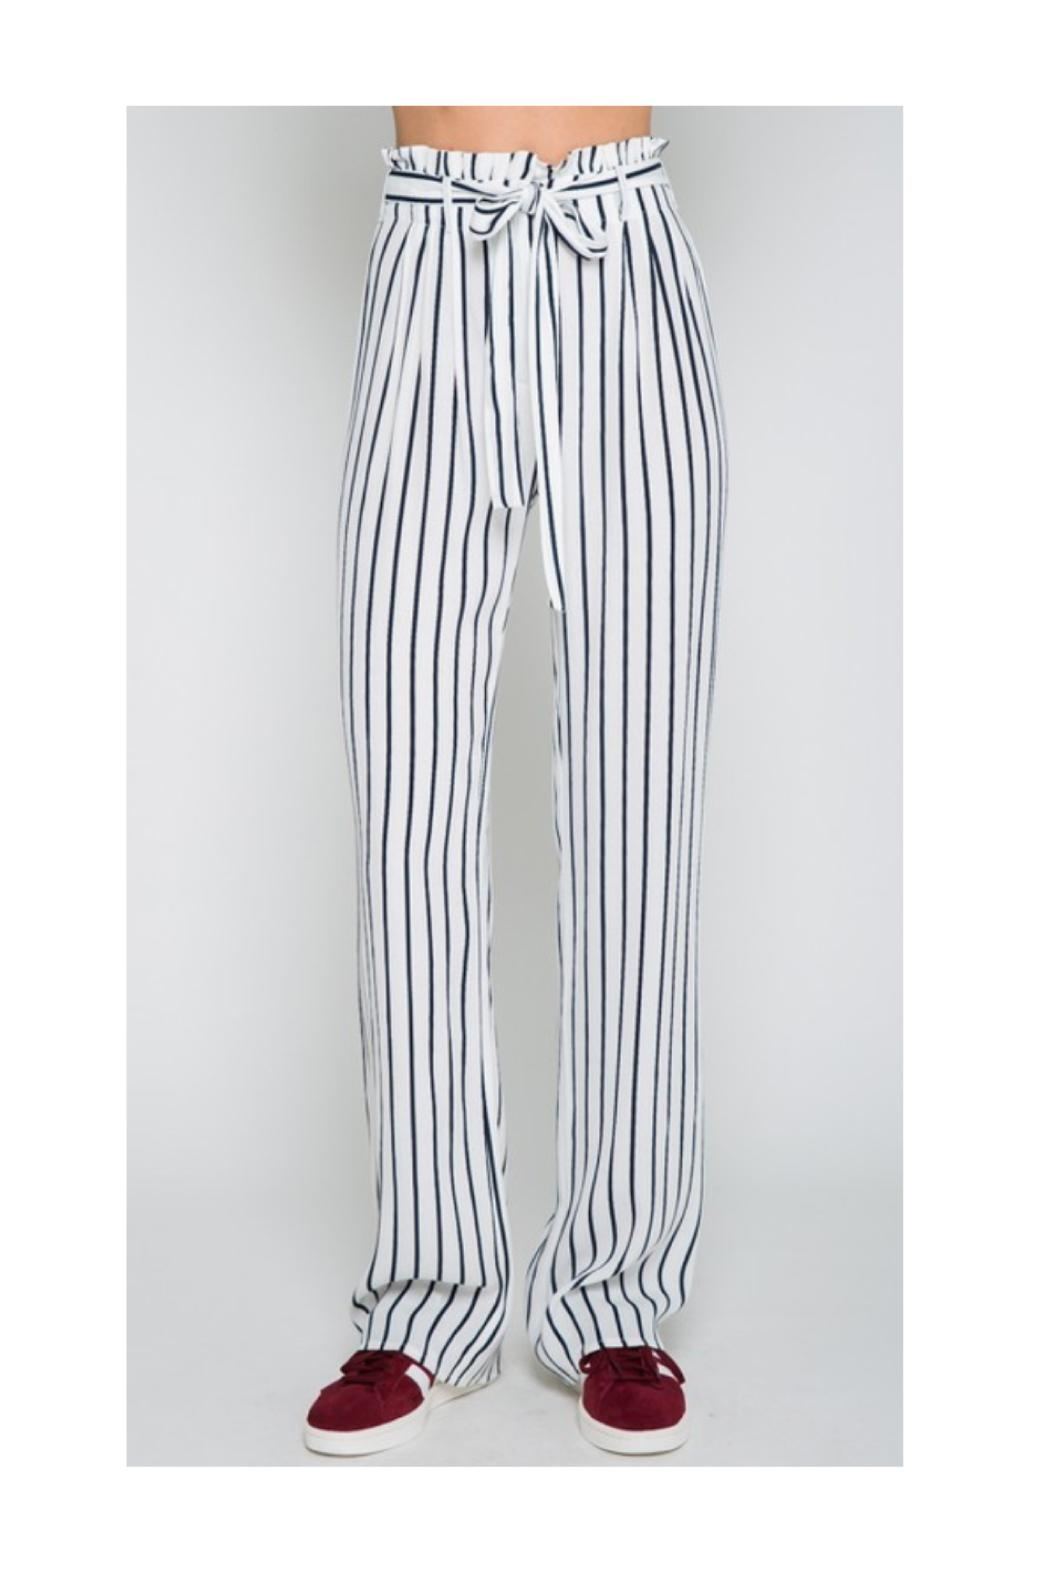 Polly & Esther Navy Stripe Pants - Main Image